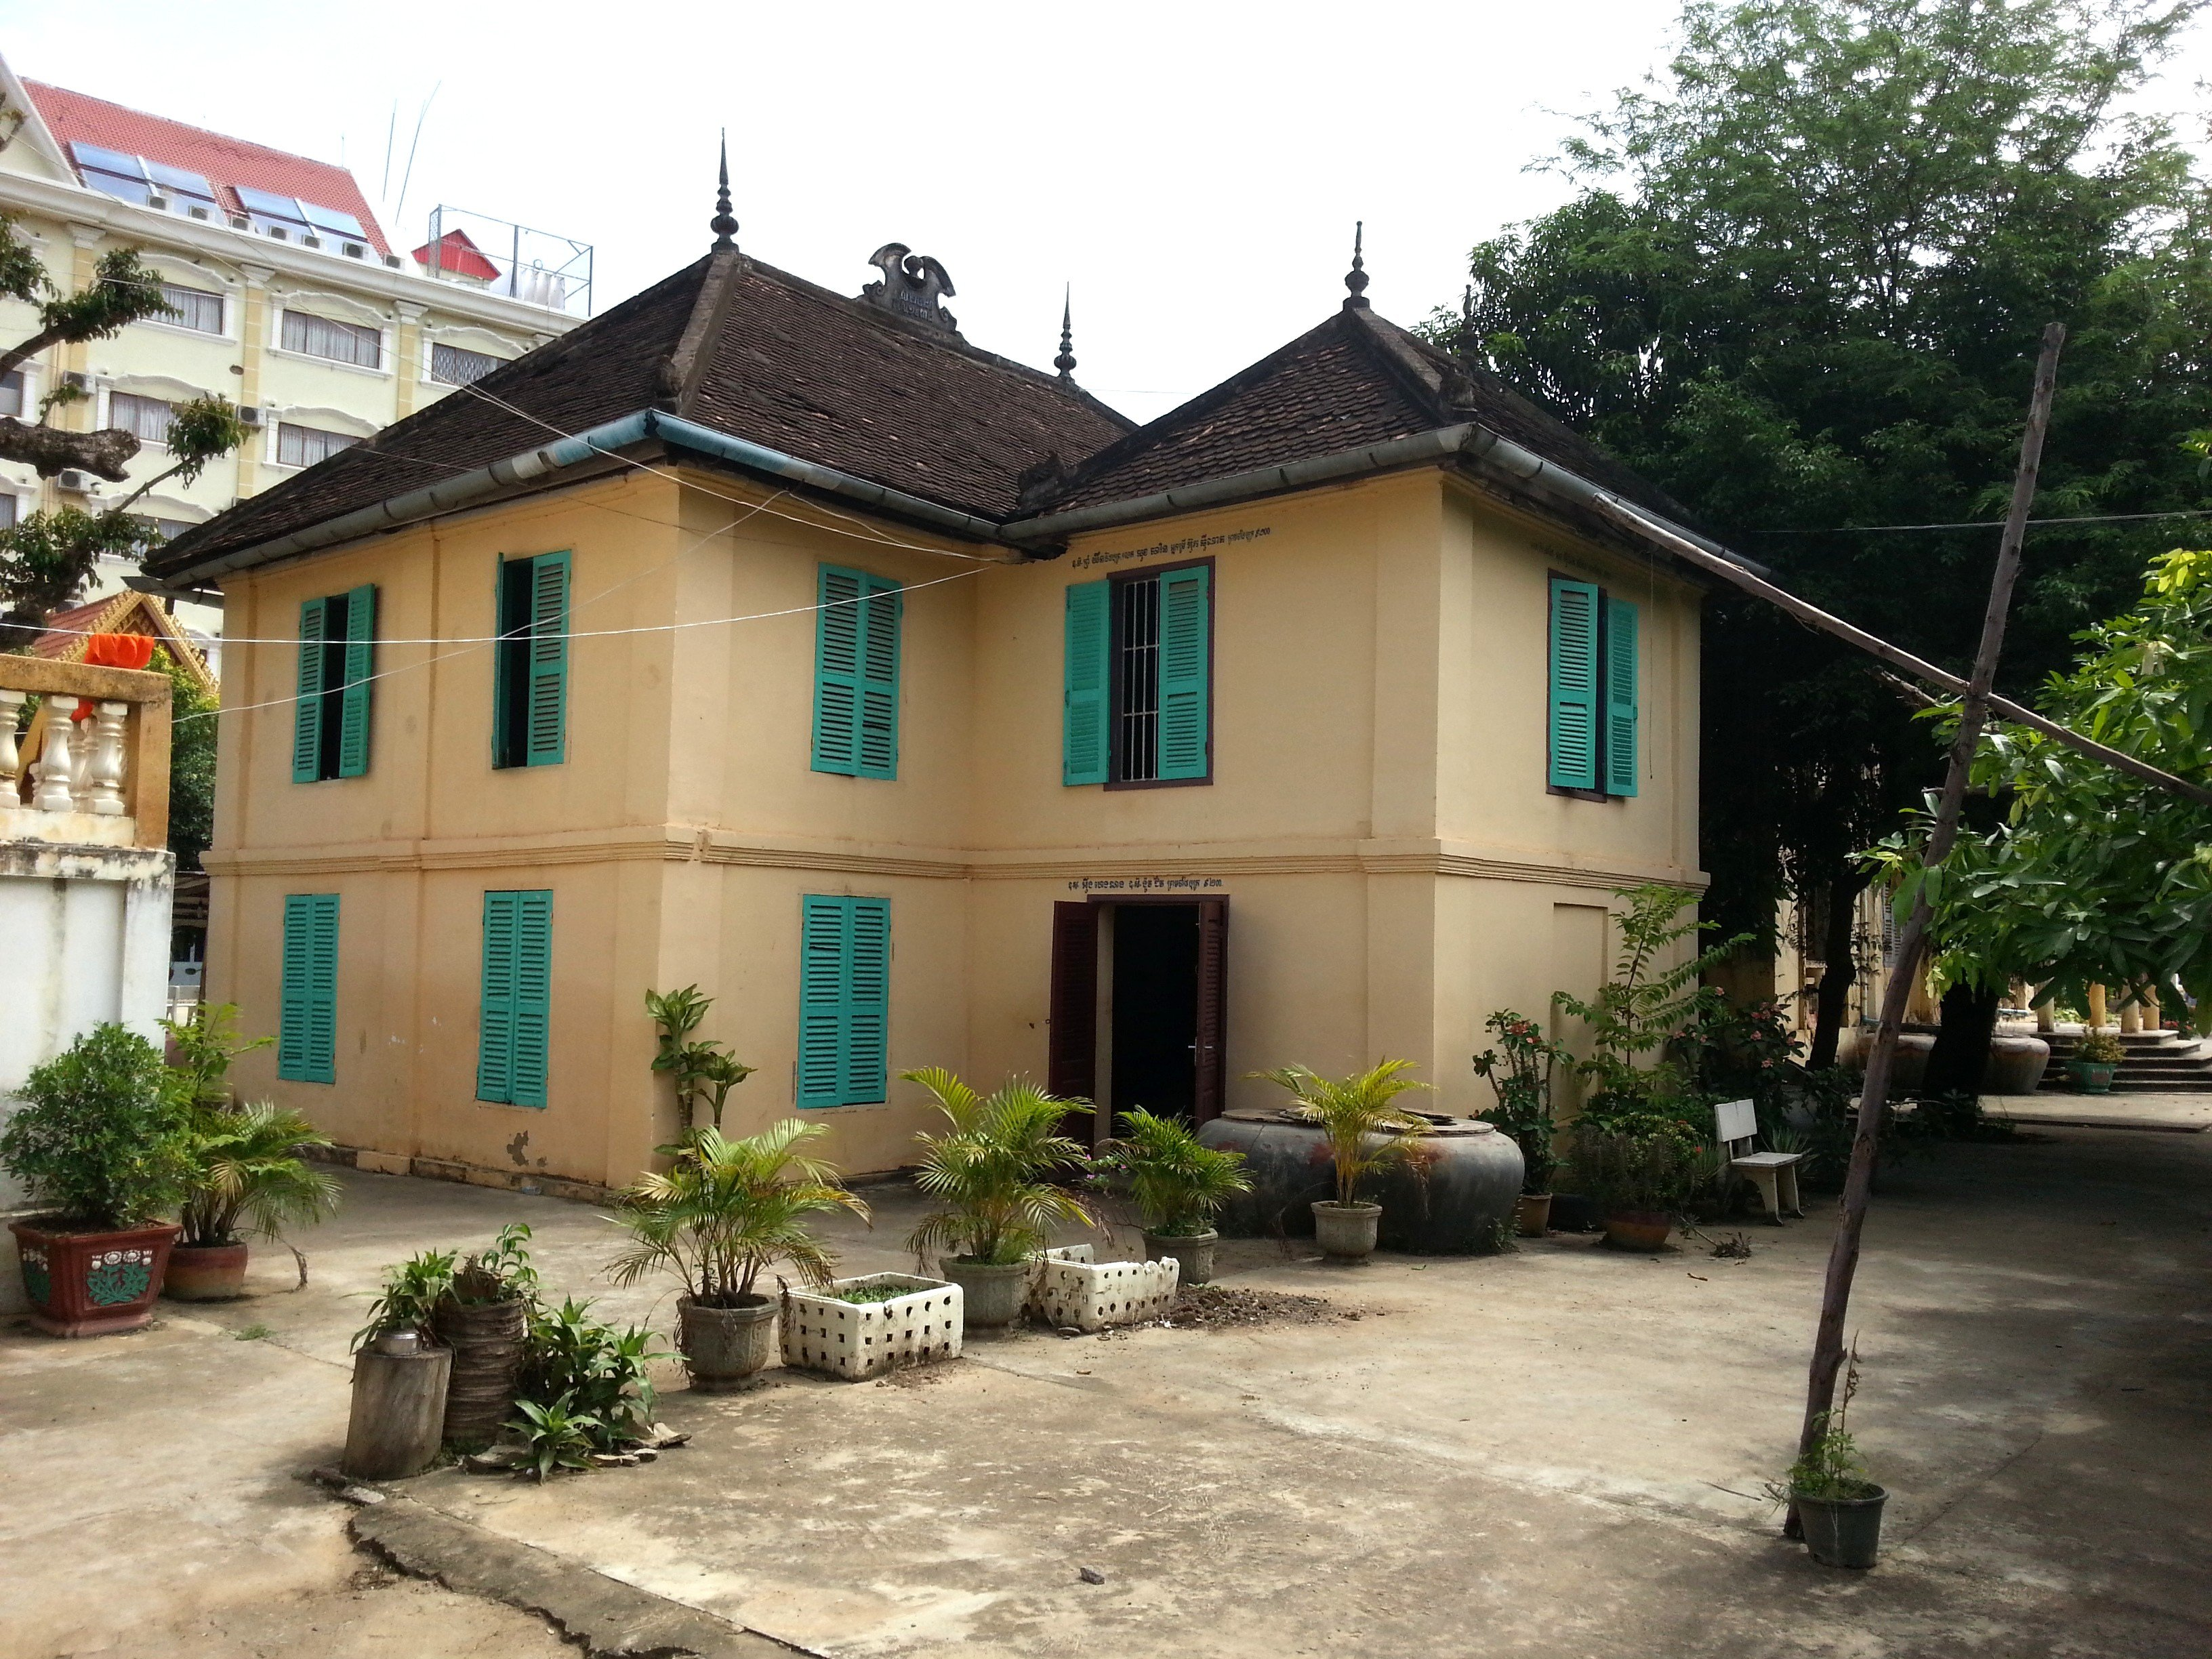 Monk's accommodation at Wat Kandal